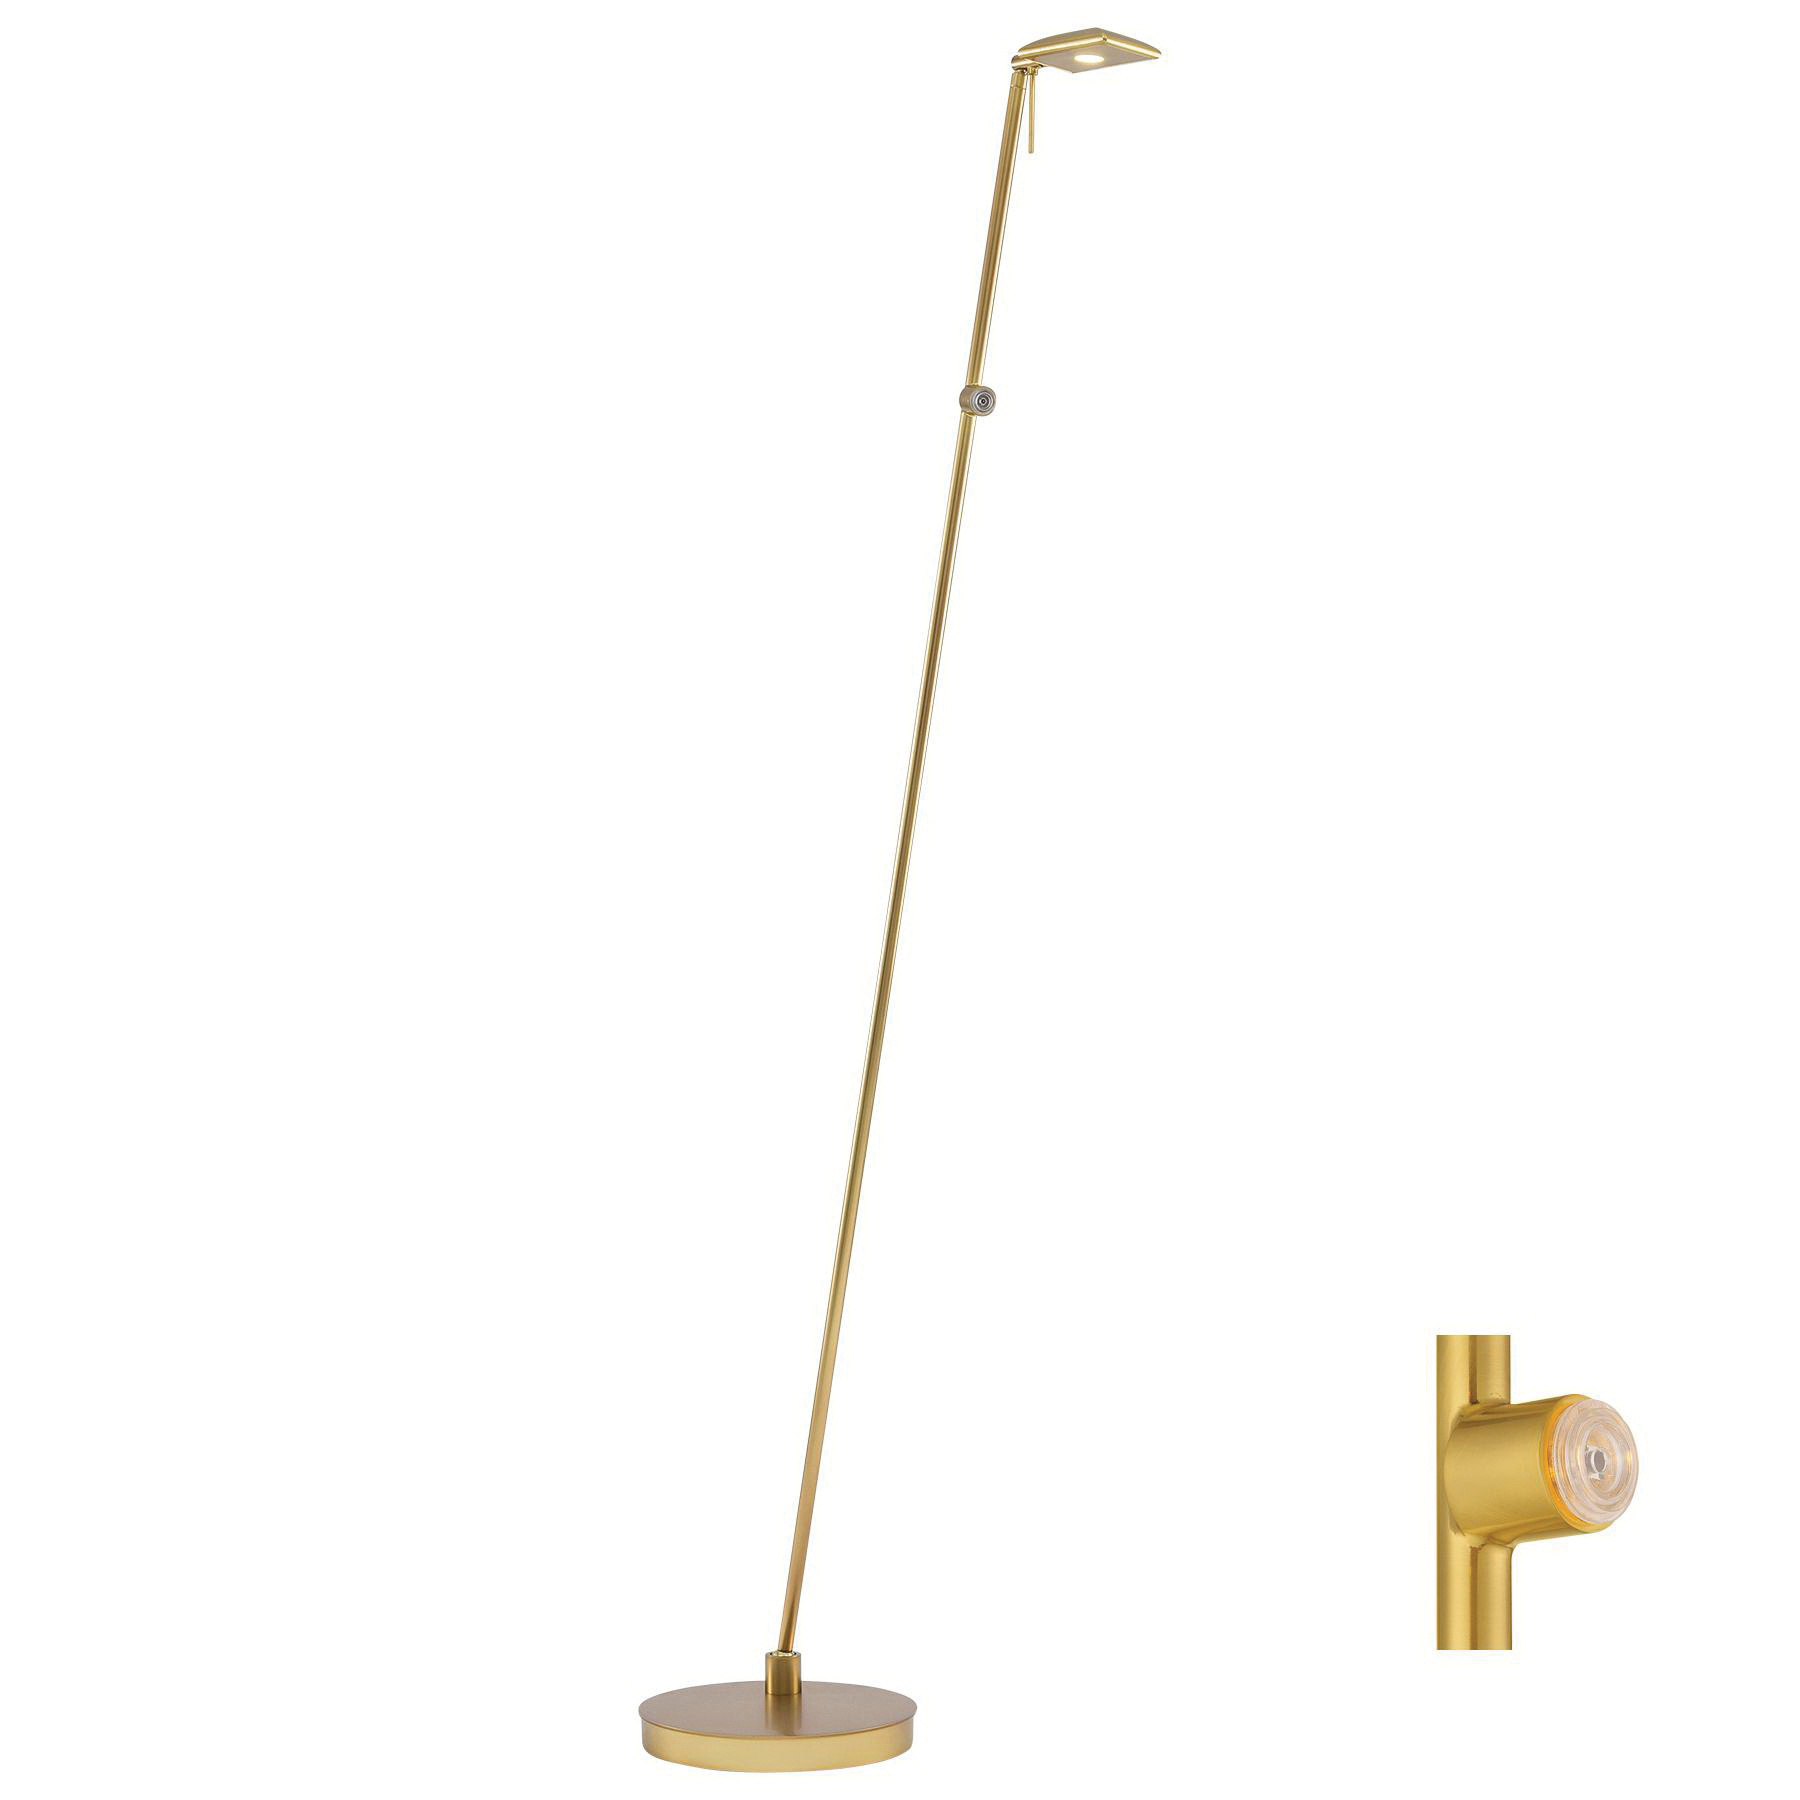 Gold Floor Reading Lamp George Kovacs P4324 248 Dimmable Portable Floor Lamp 8 Watt Honey